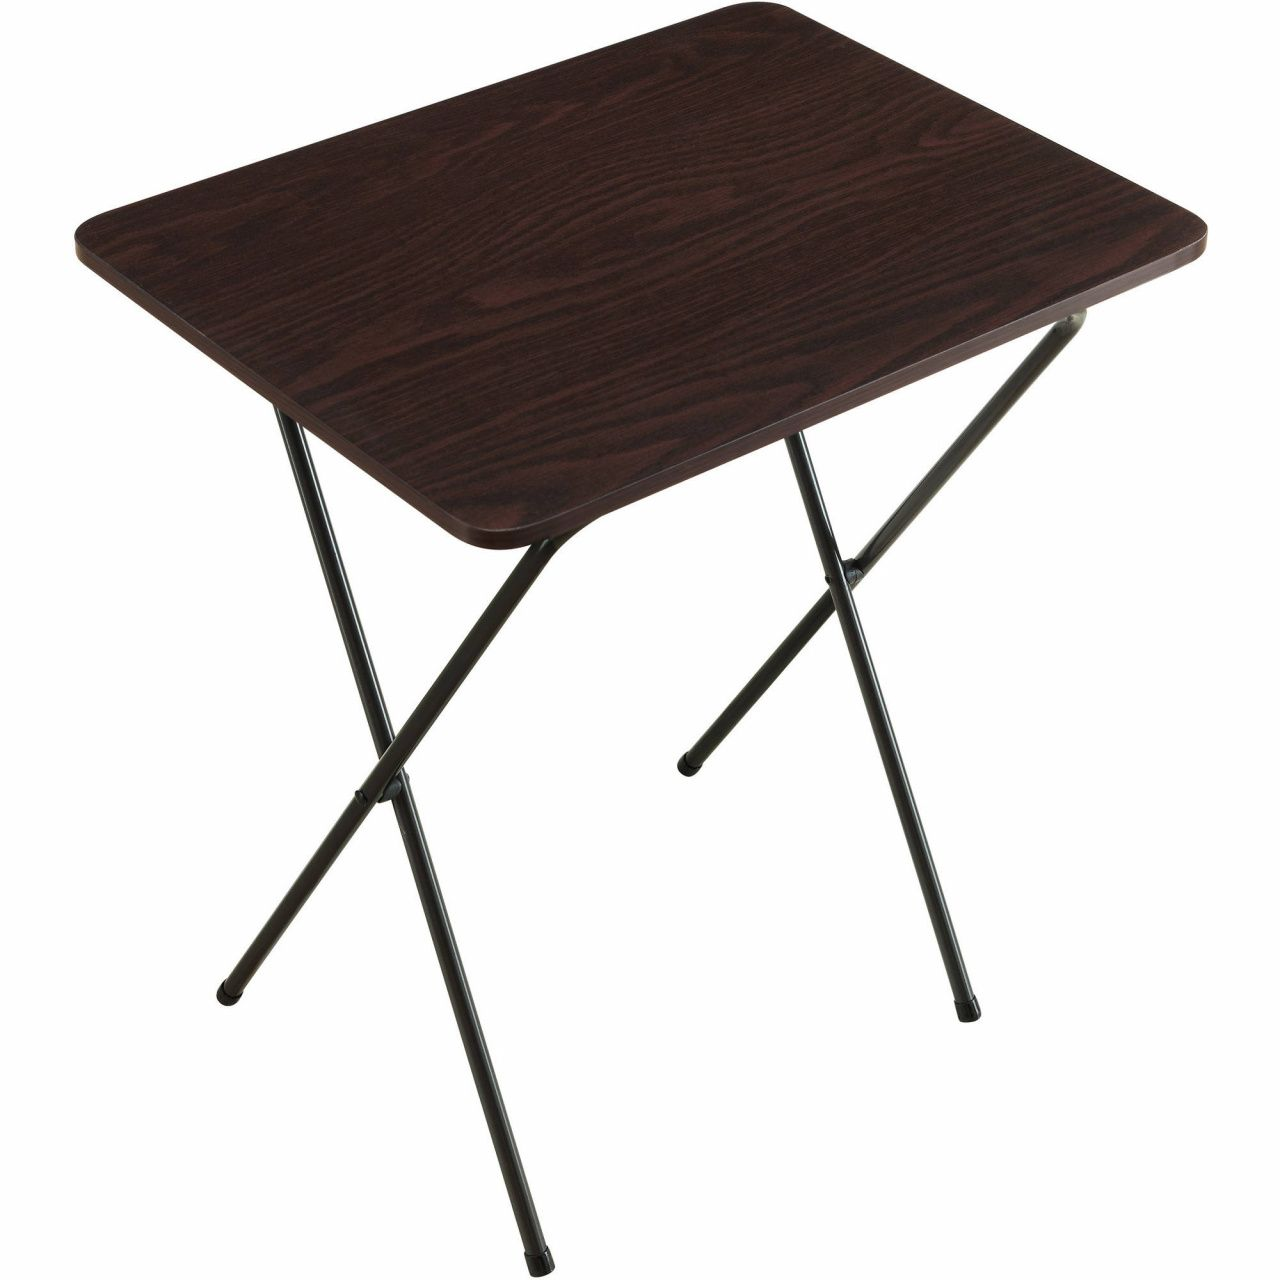 Small Foldable Tables Home Office Furniture Collections Check More At Http Www Nikkitsfun Com Small Foldable Tables Tray Table Fold Up Table Foldable Table